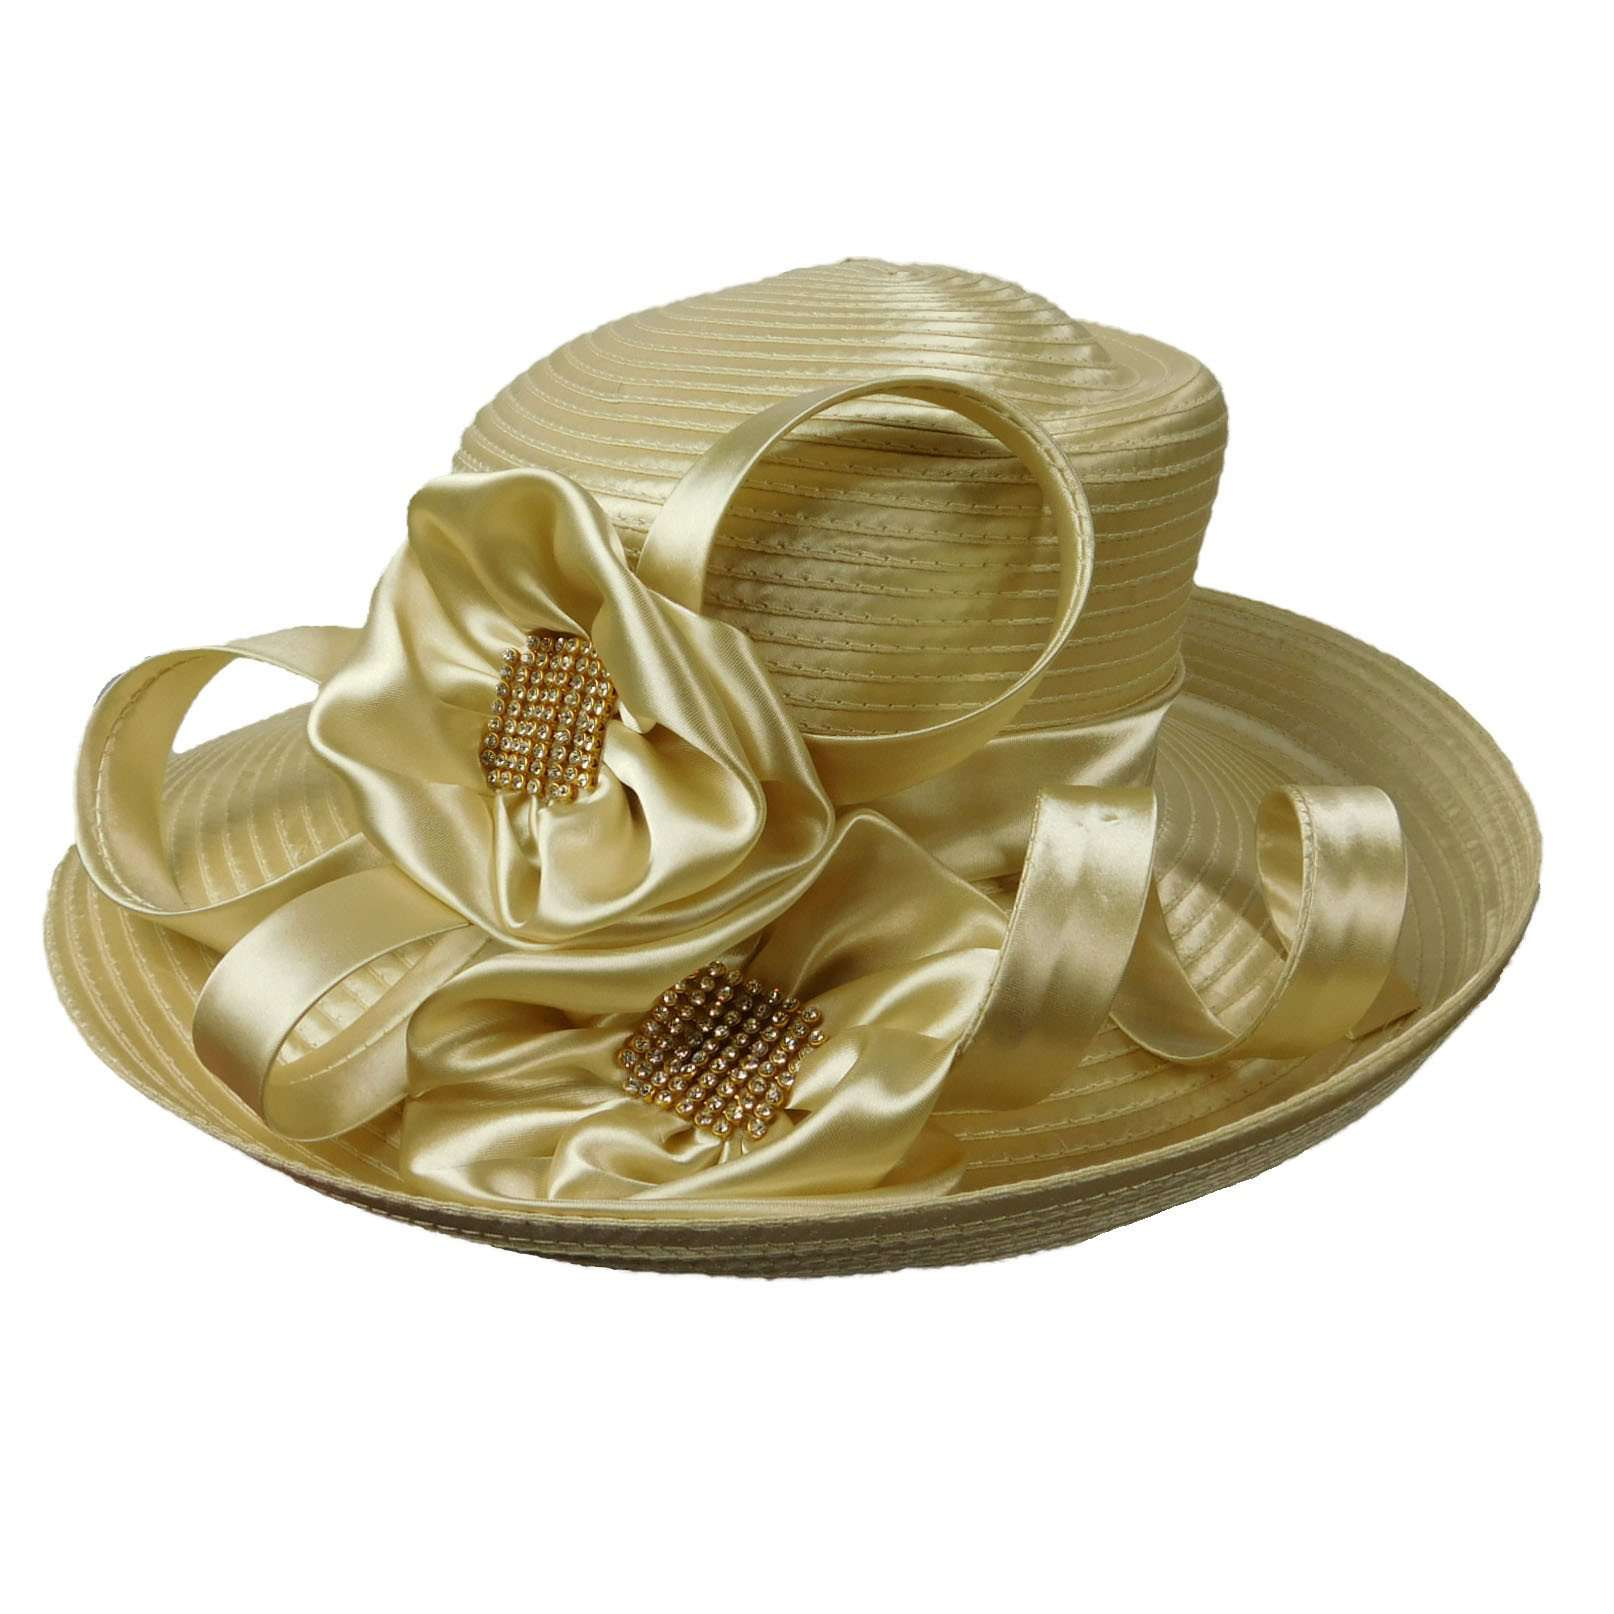 Asymmetric Satin Braid Hat with Satin Flowers - SetarTrading Hats